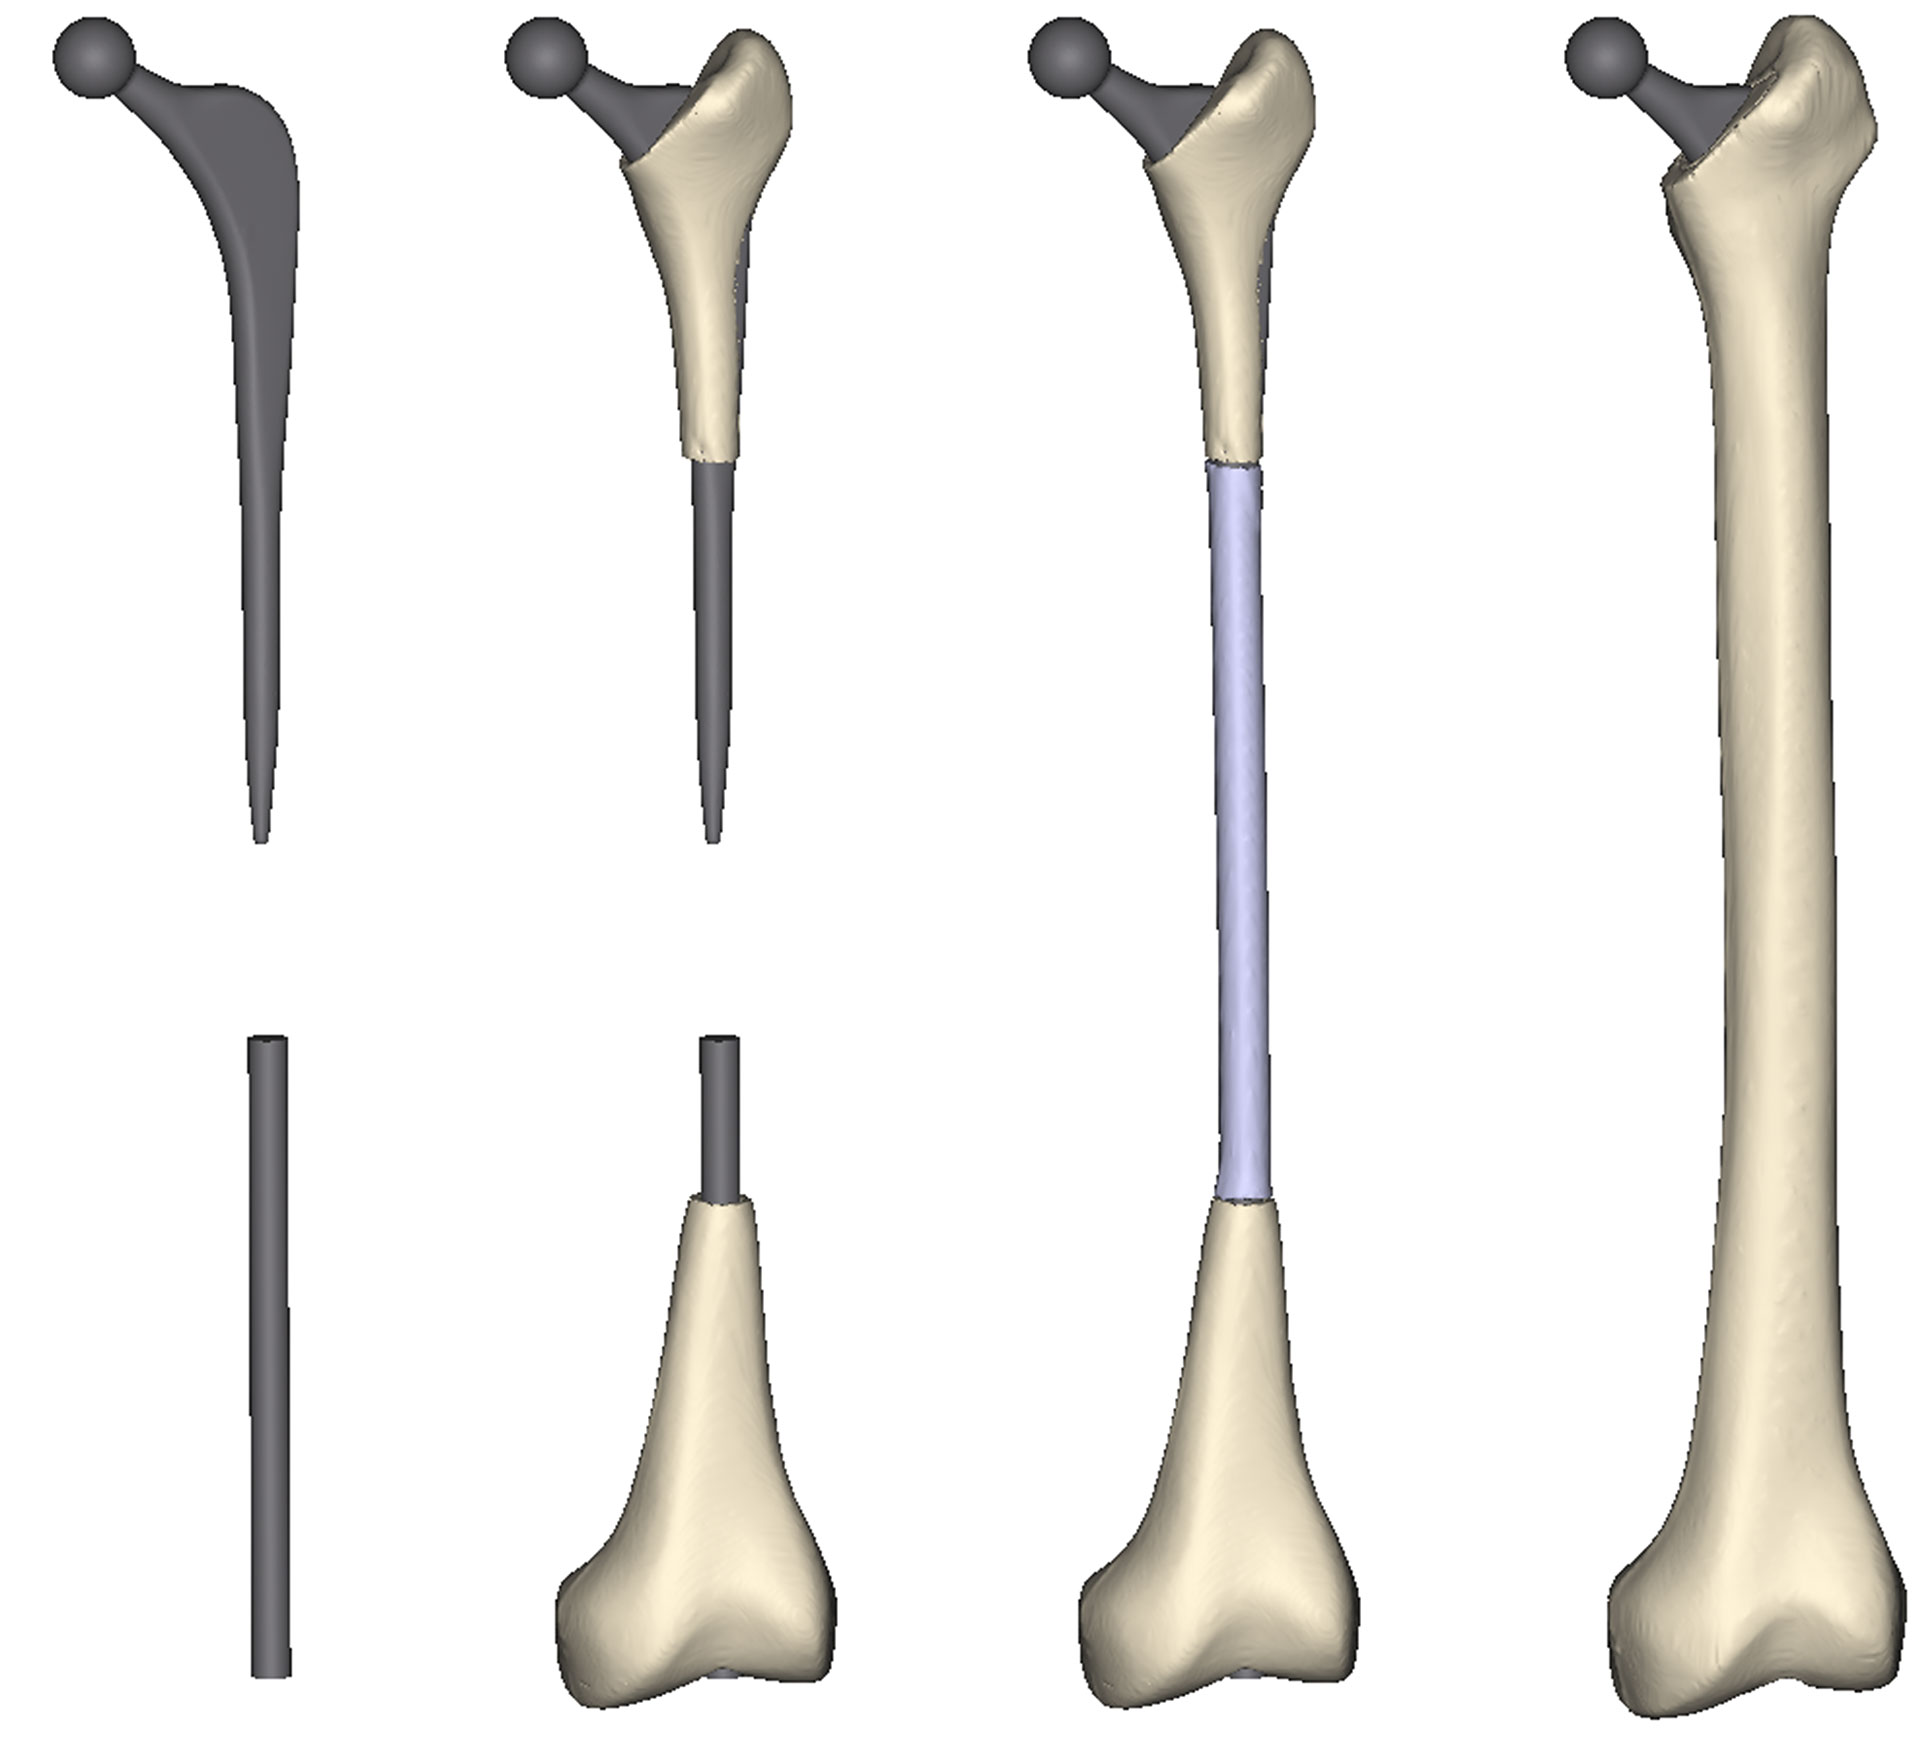 Fig. 3 - Masks – Prosthesis, trabecular bone, cortical bone and  intramedullary space